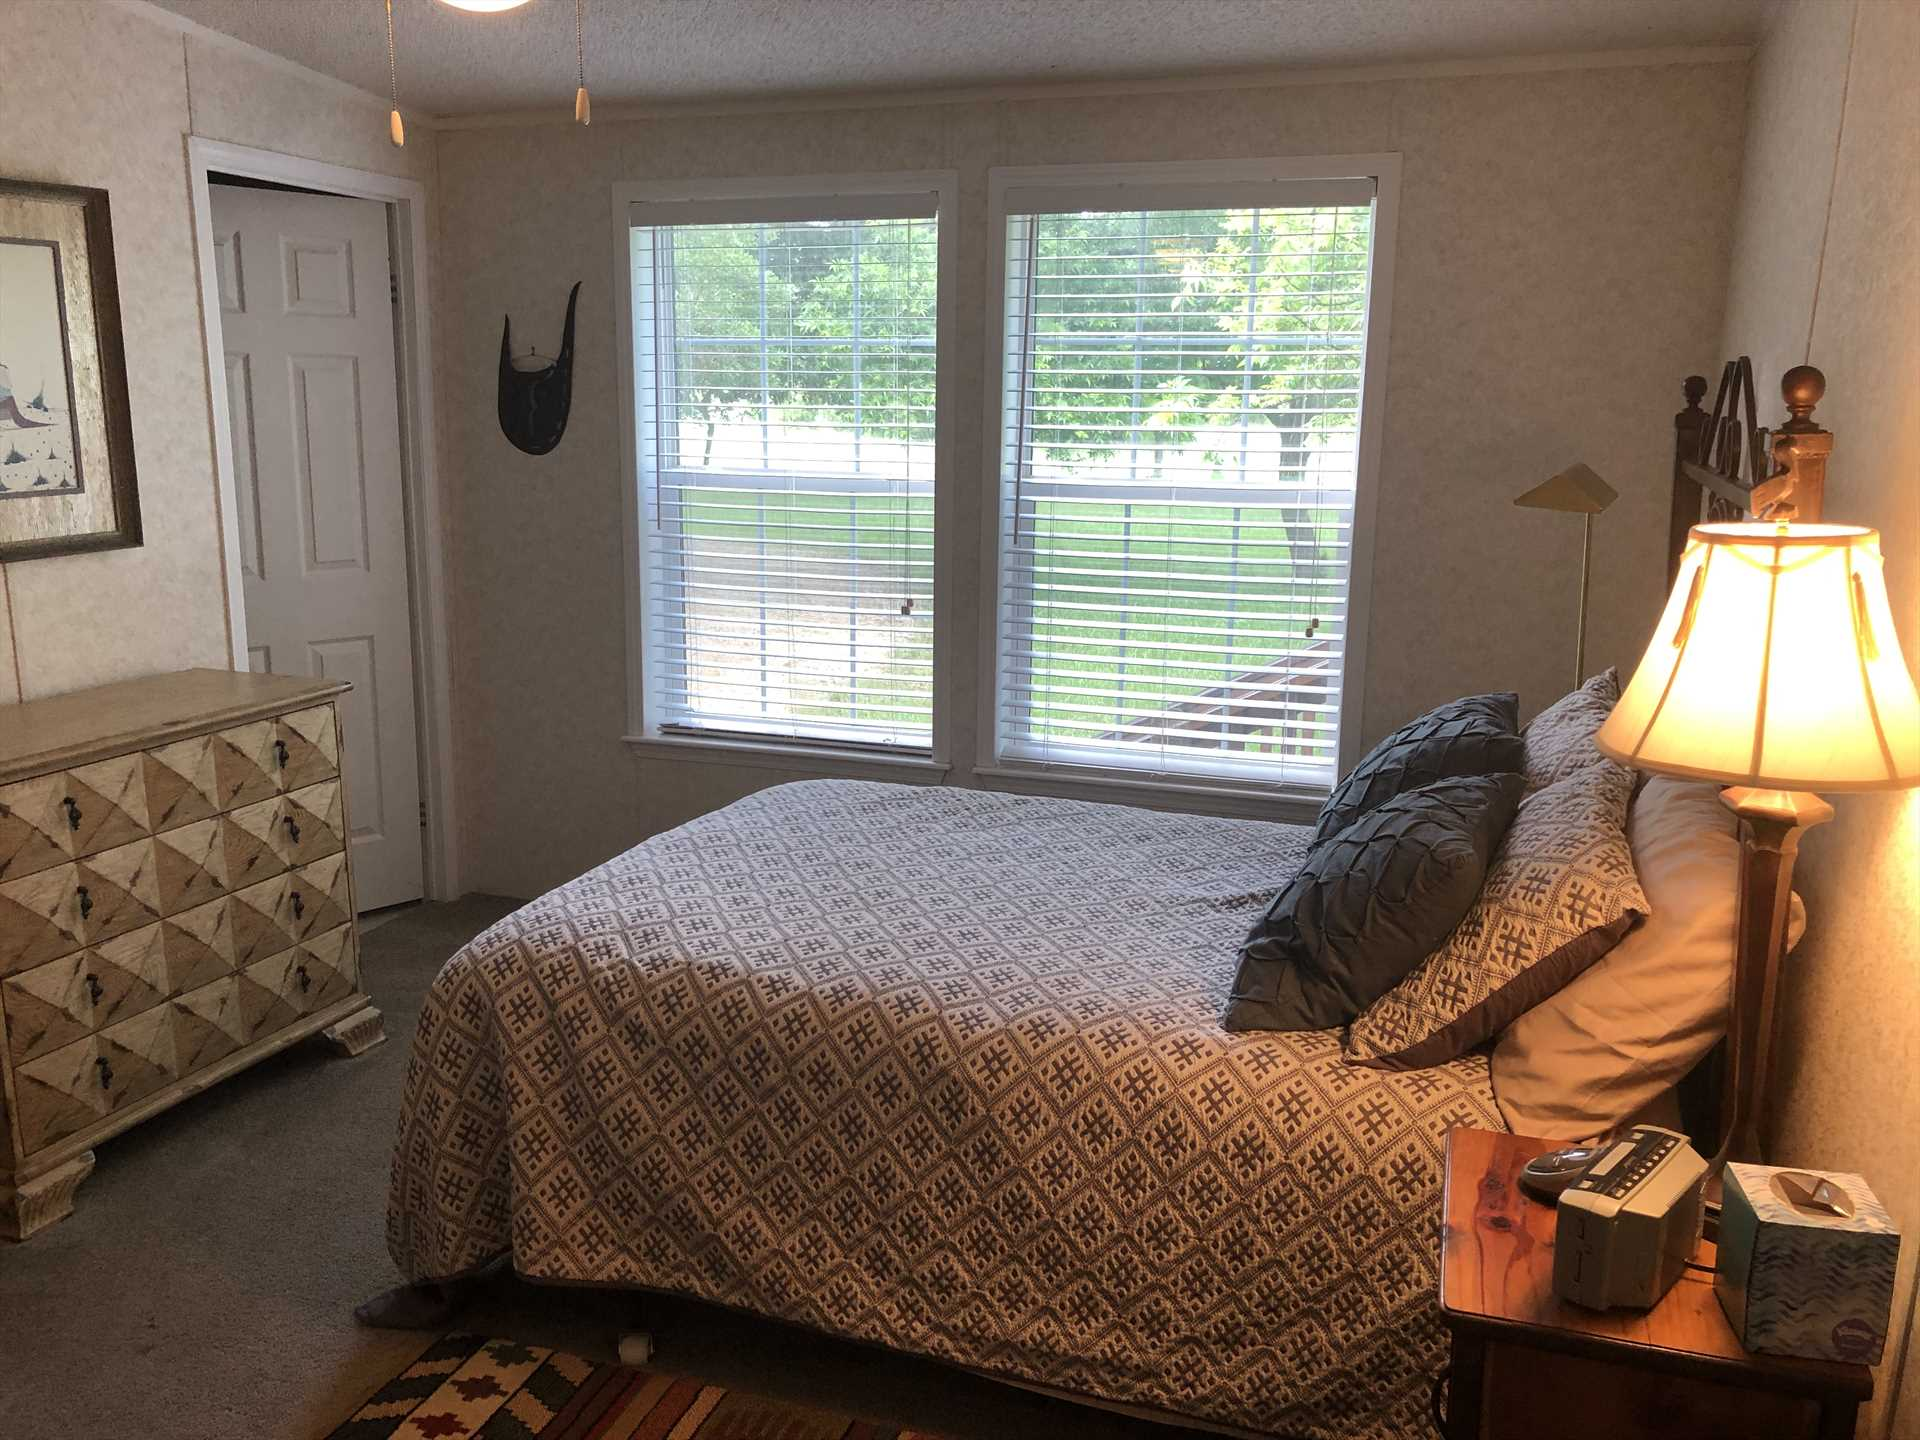 The plush and comfortable double bed in the third bedroom comes with clean linens, as do all the sleeping arrangements here.